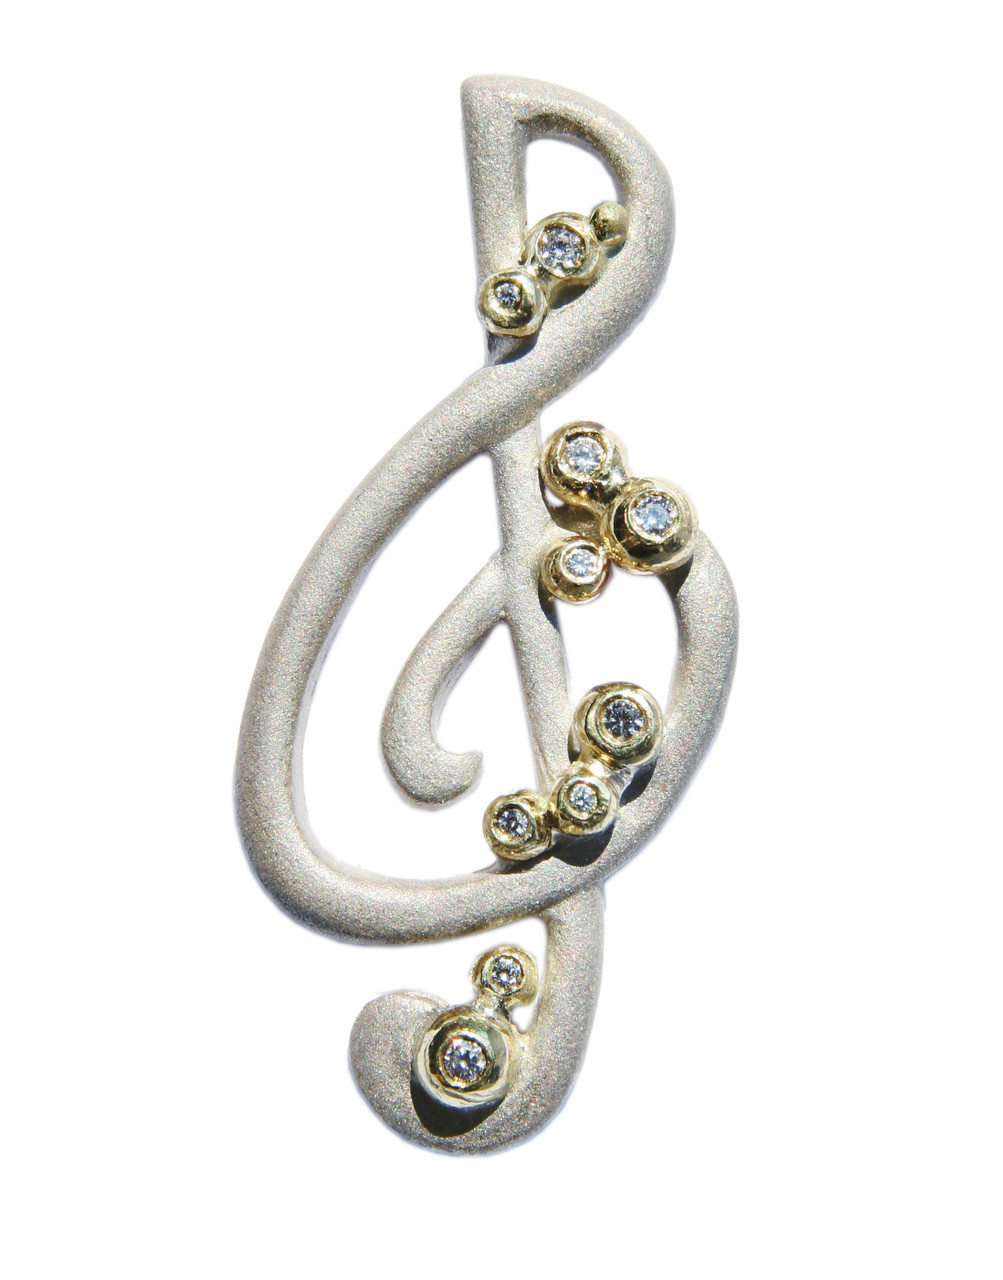 Treble Clef pendant-Sterling Silver with solid 18K gold dots of diamonds